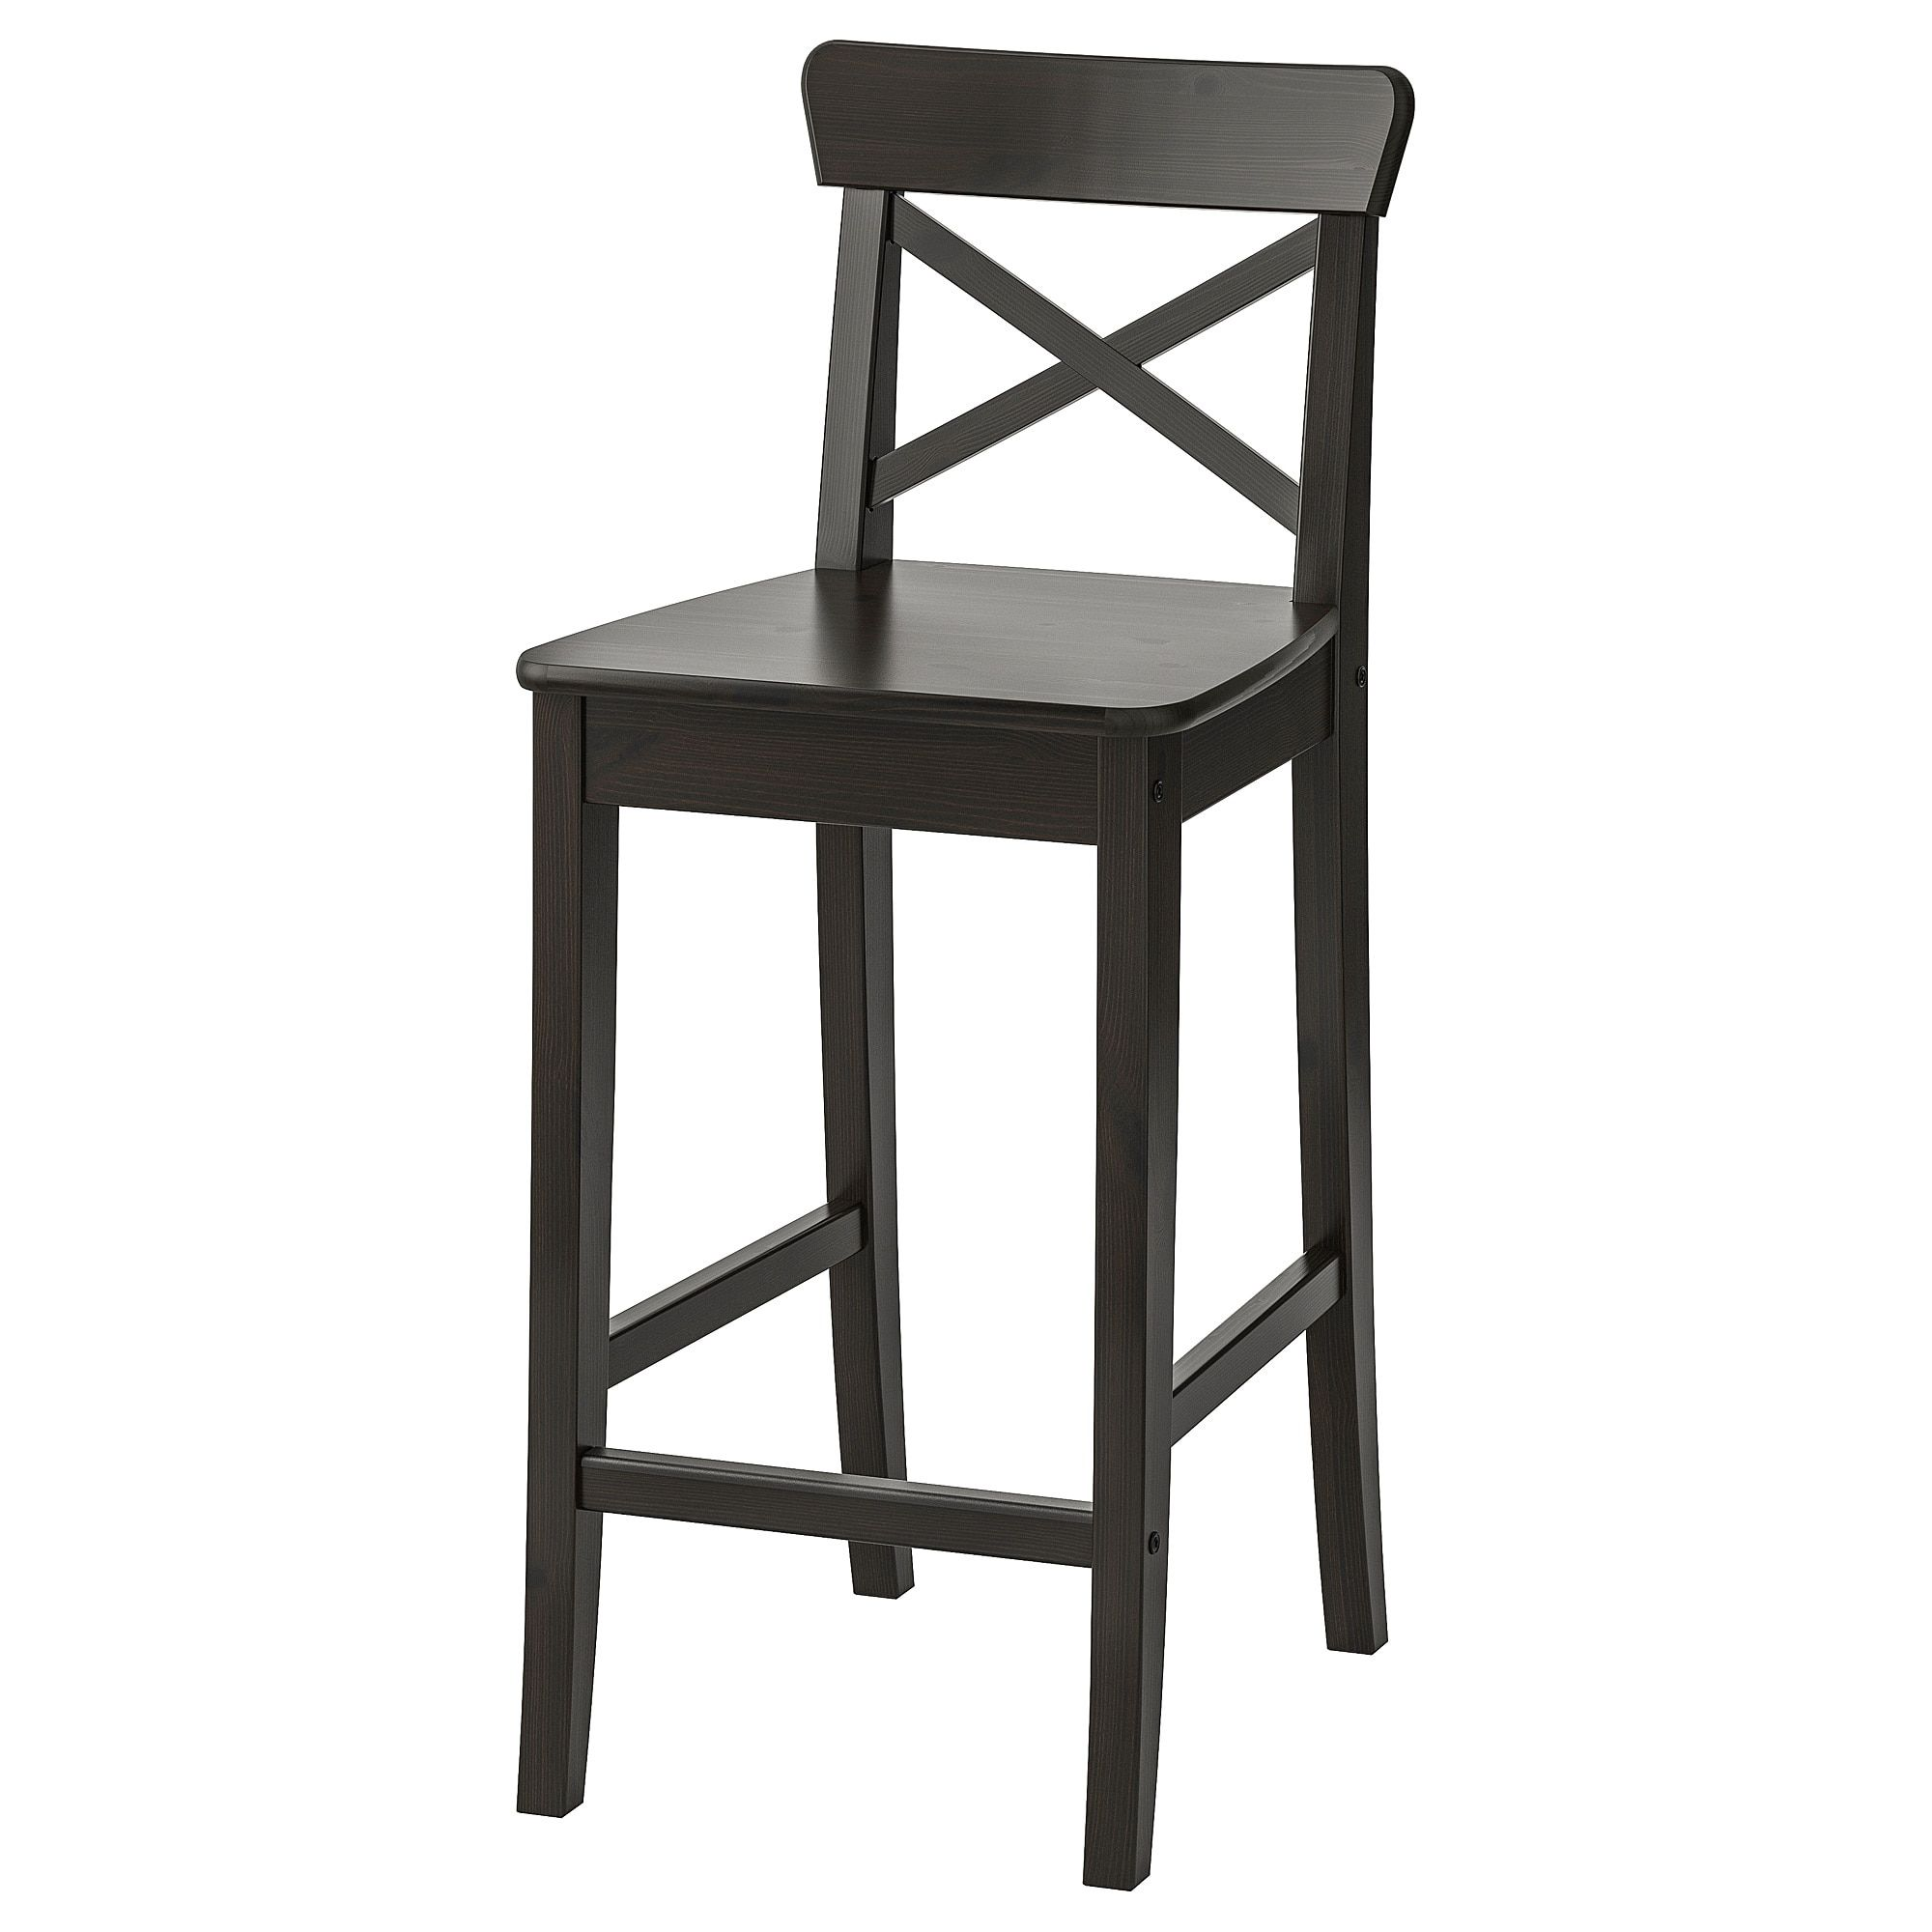 Ingolf Bar Stool With Backrest Brown Black 24 3 4 Bar Stools Wooden Bar Stools Stool